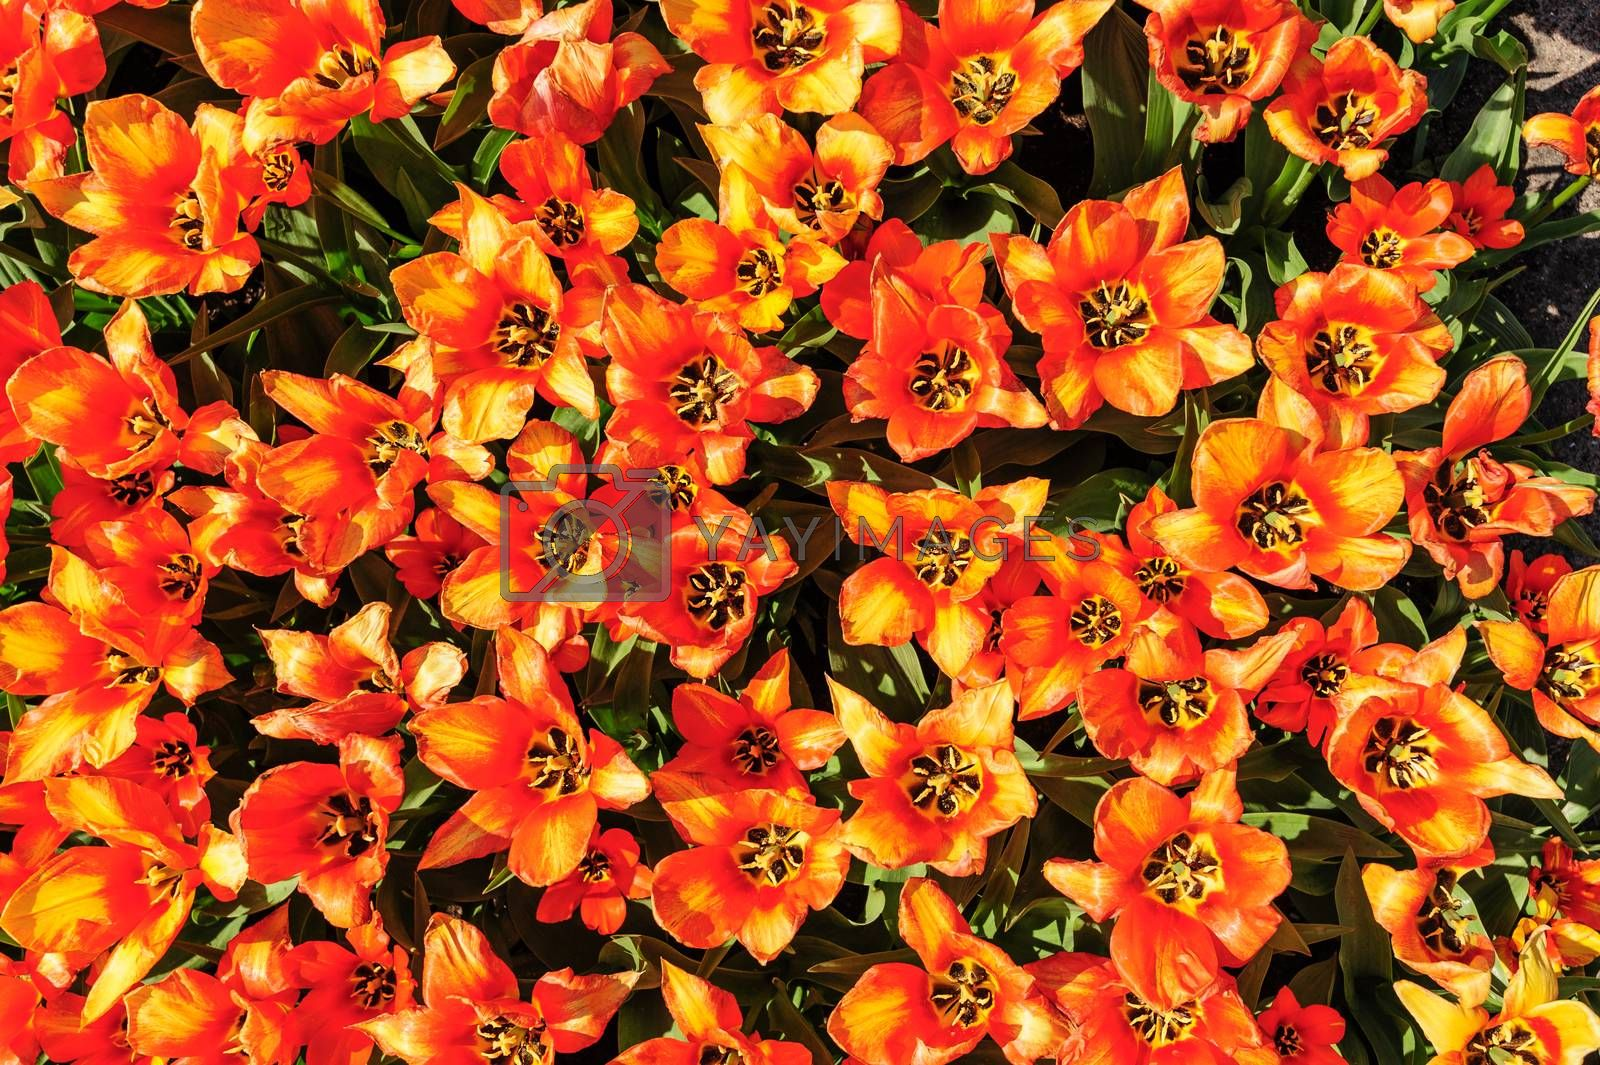 Red-yellow tulips flowerbed shot from above, Keukenhof Gardens in Lisse, Netherlands. Good as background or wallpaper.